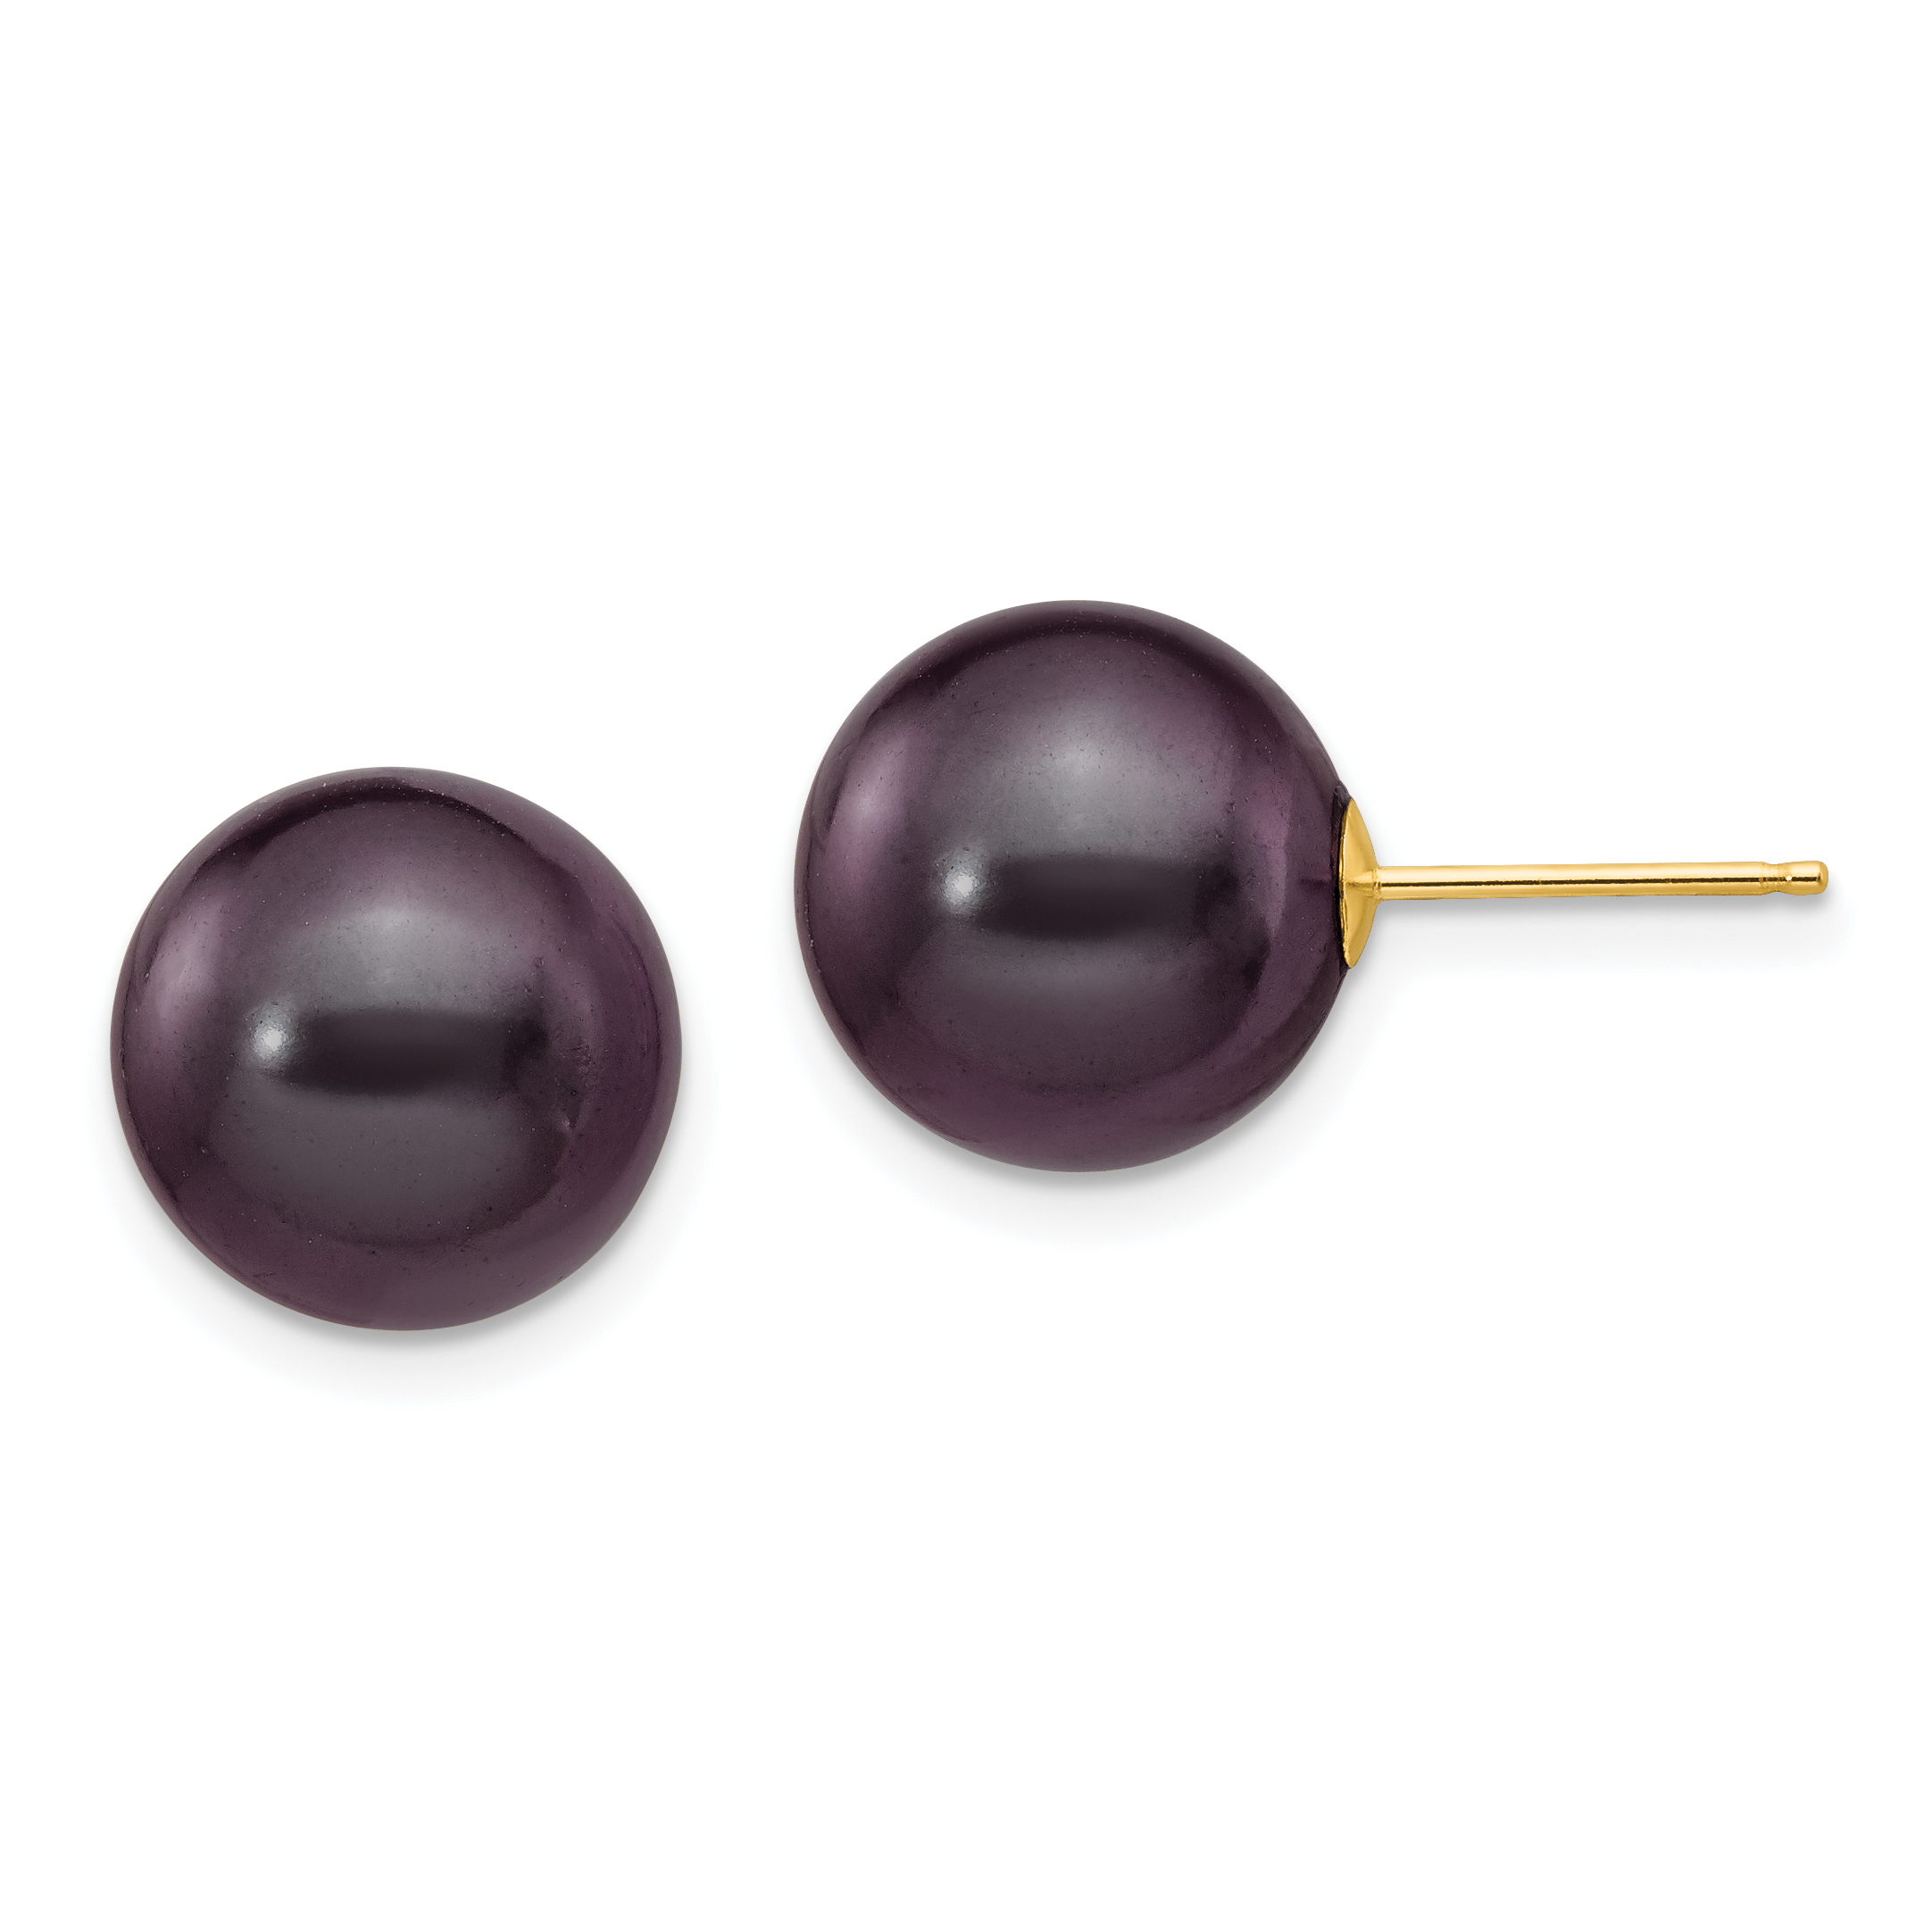 14K Yellow Gold 10-11mm Black Round FW Cultured Pearl Stud Earrings - image 2 of 2